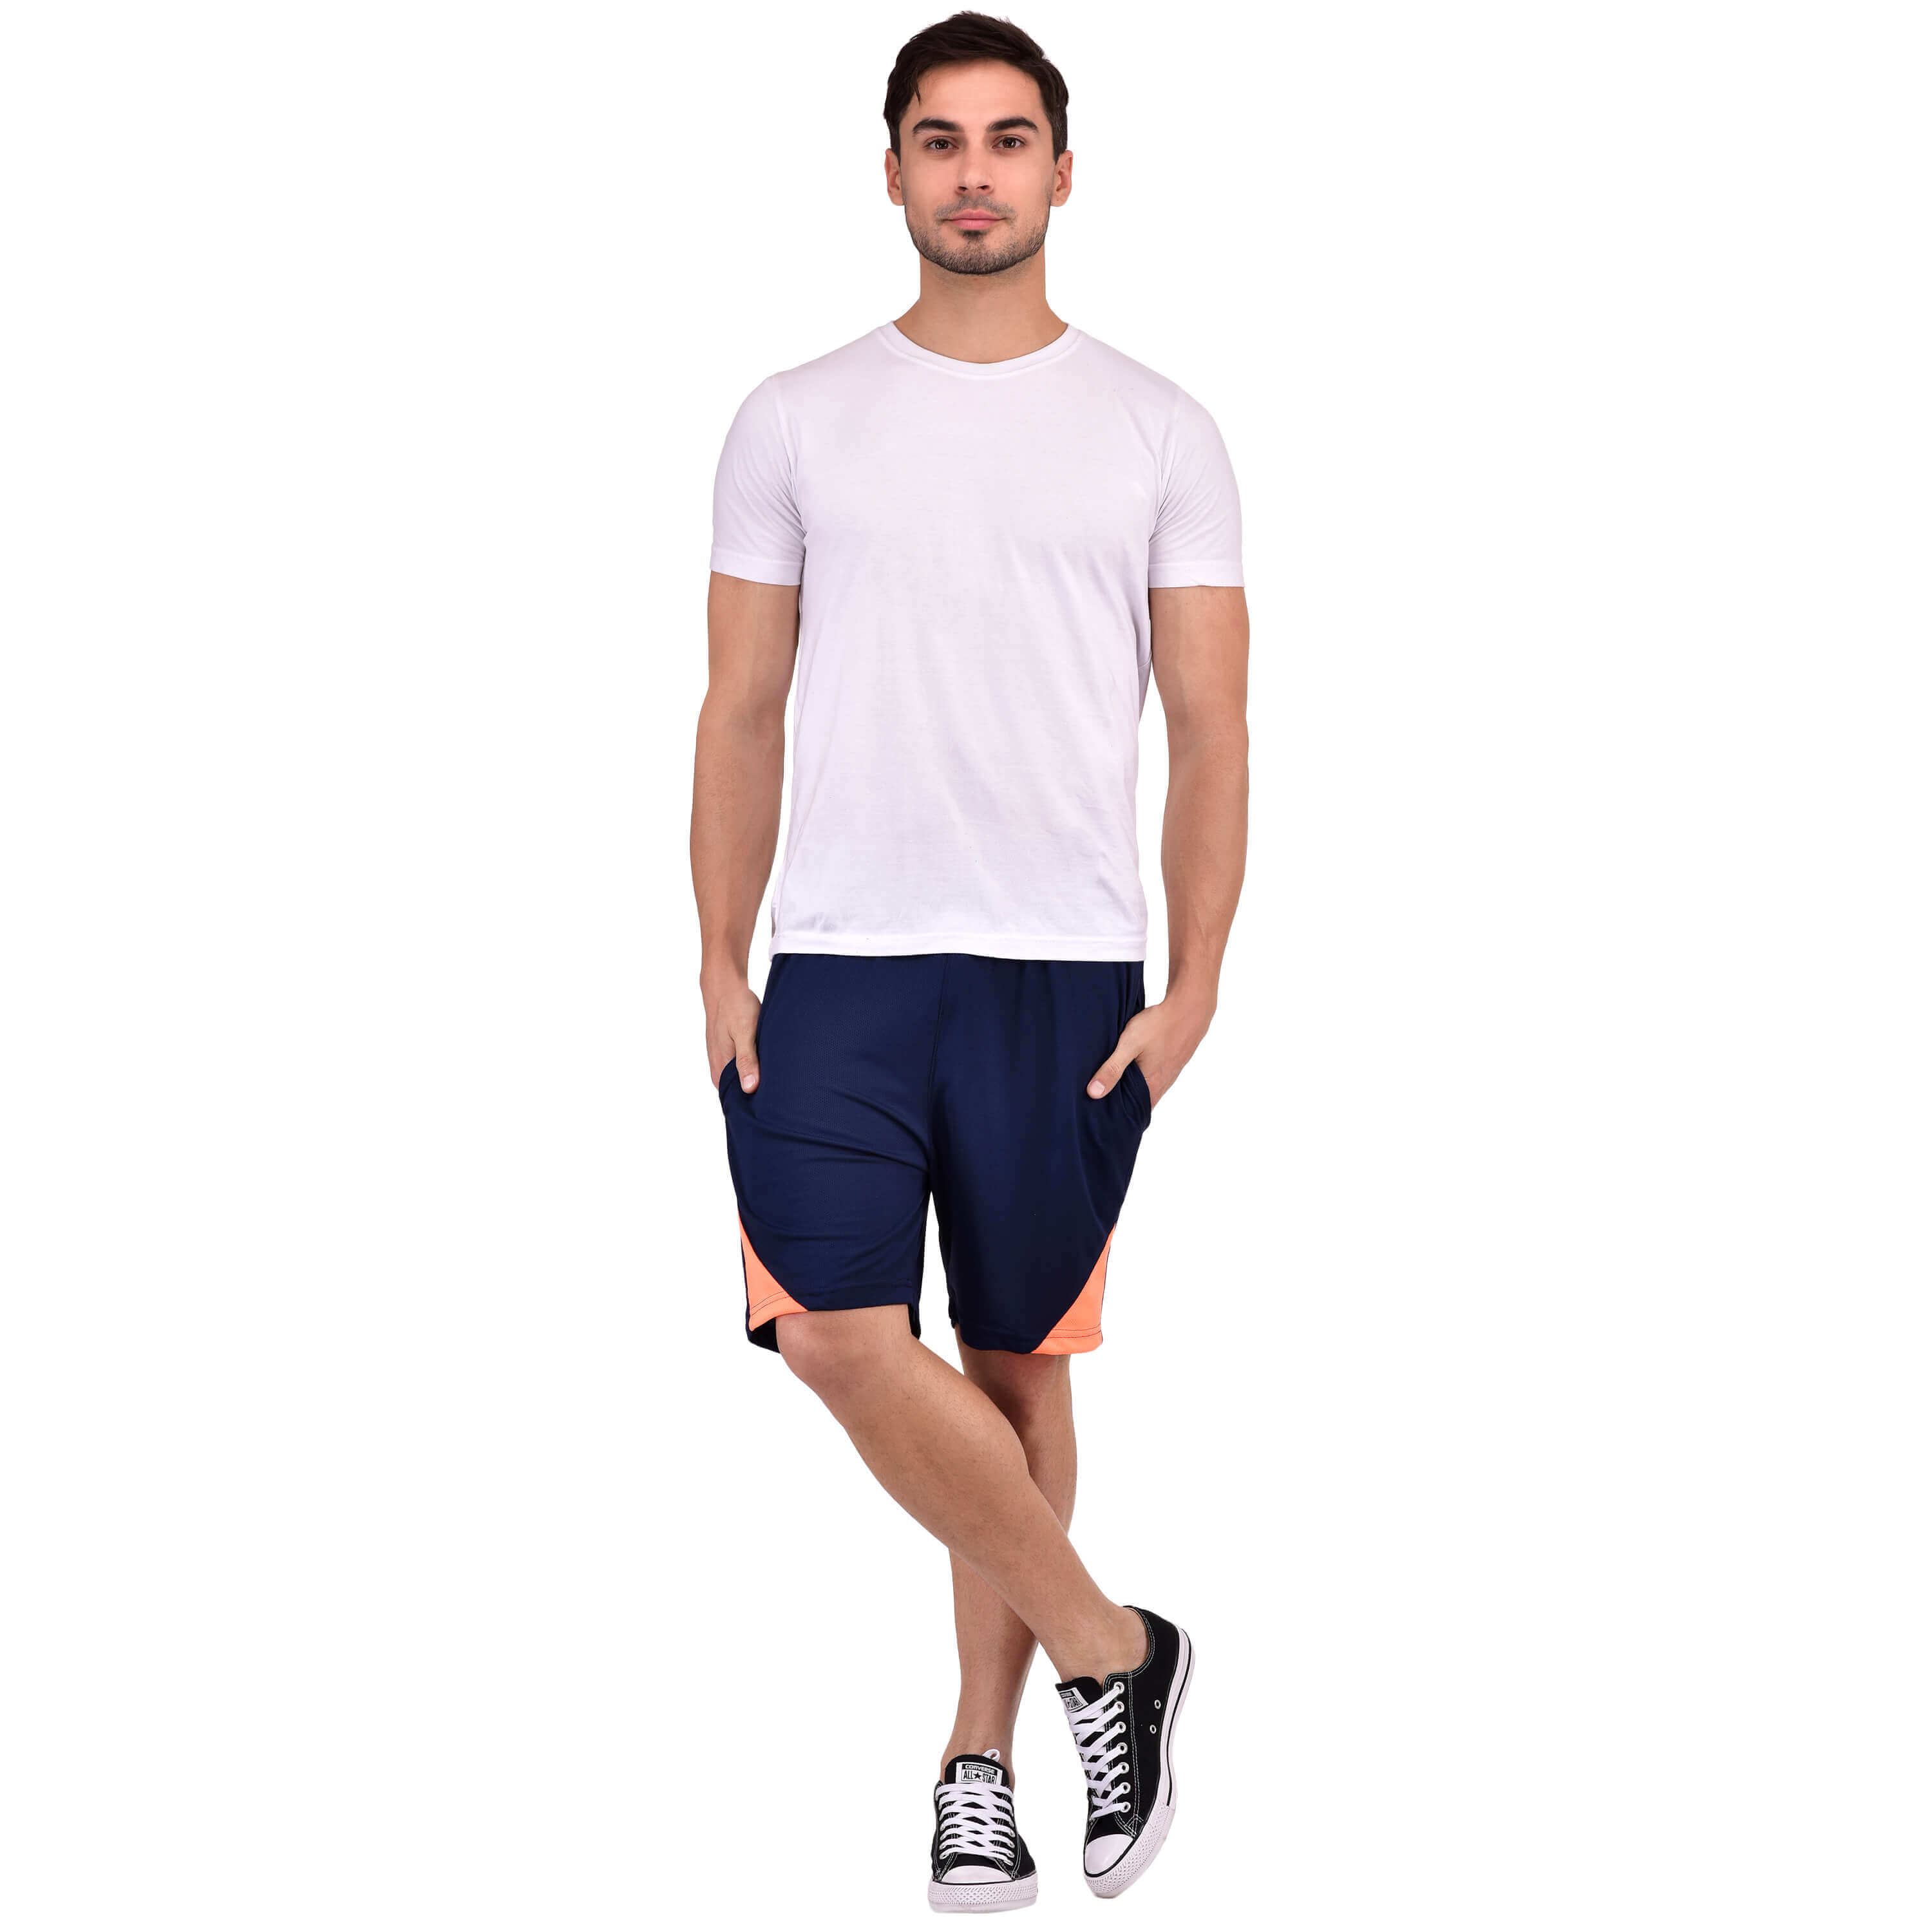 Cotton T Shirts Manufacturers